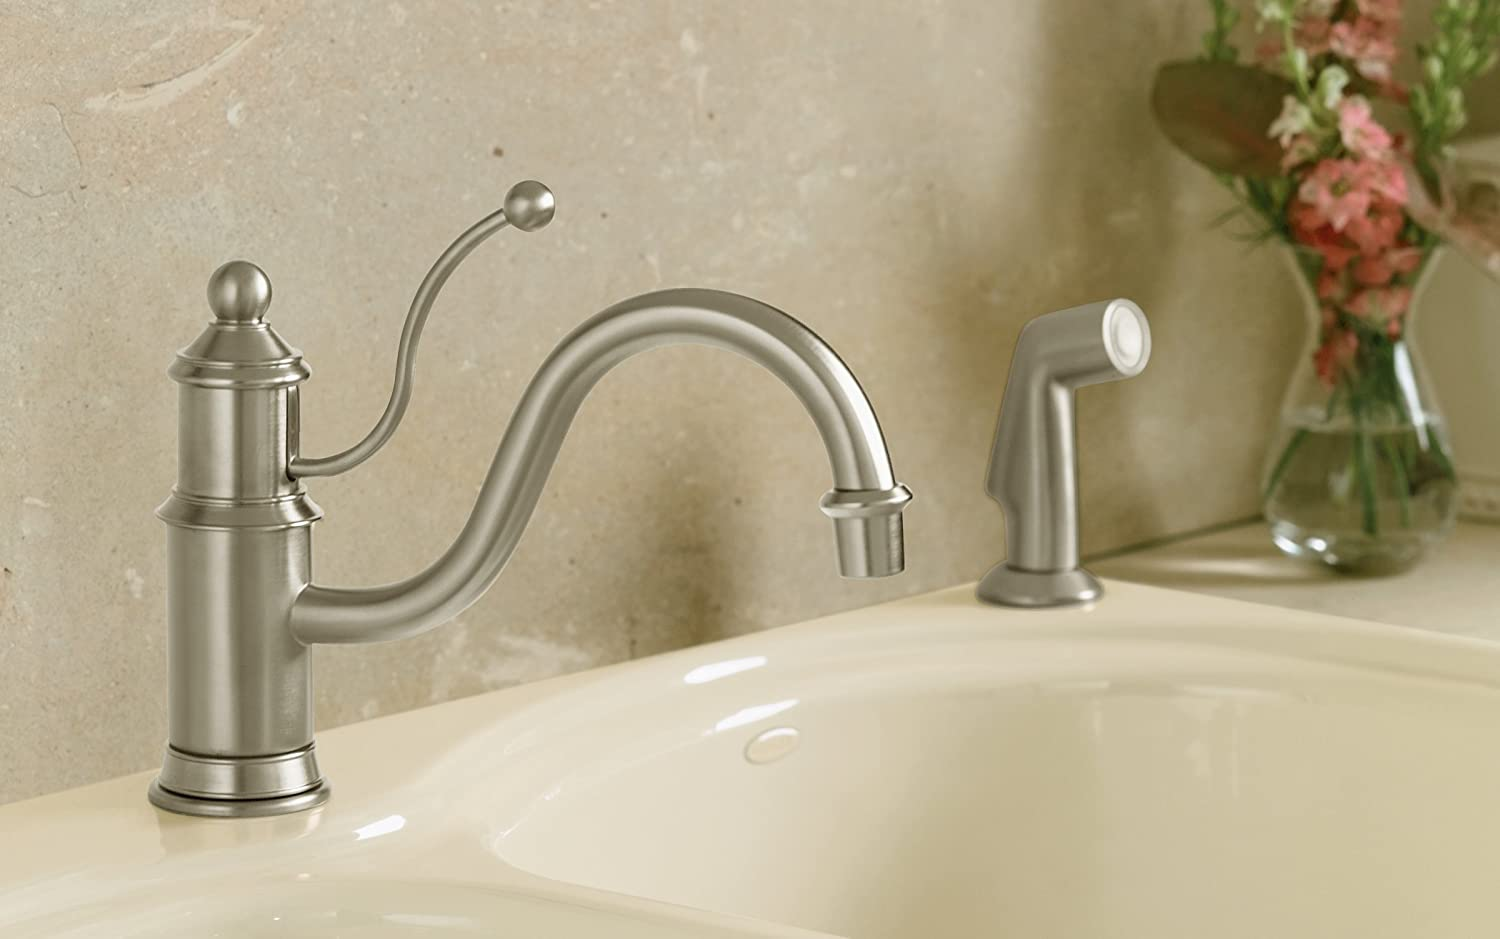 KOHLER K-169-BN Antique Single Control Kitchen Sink Faucet ...